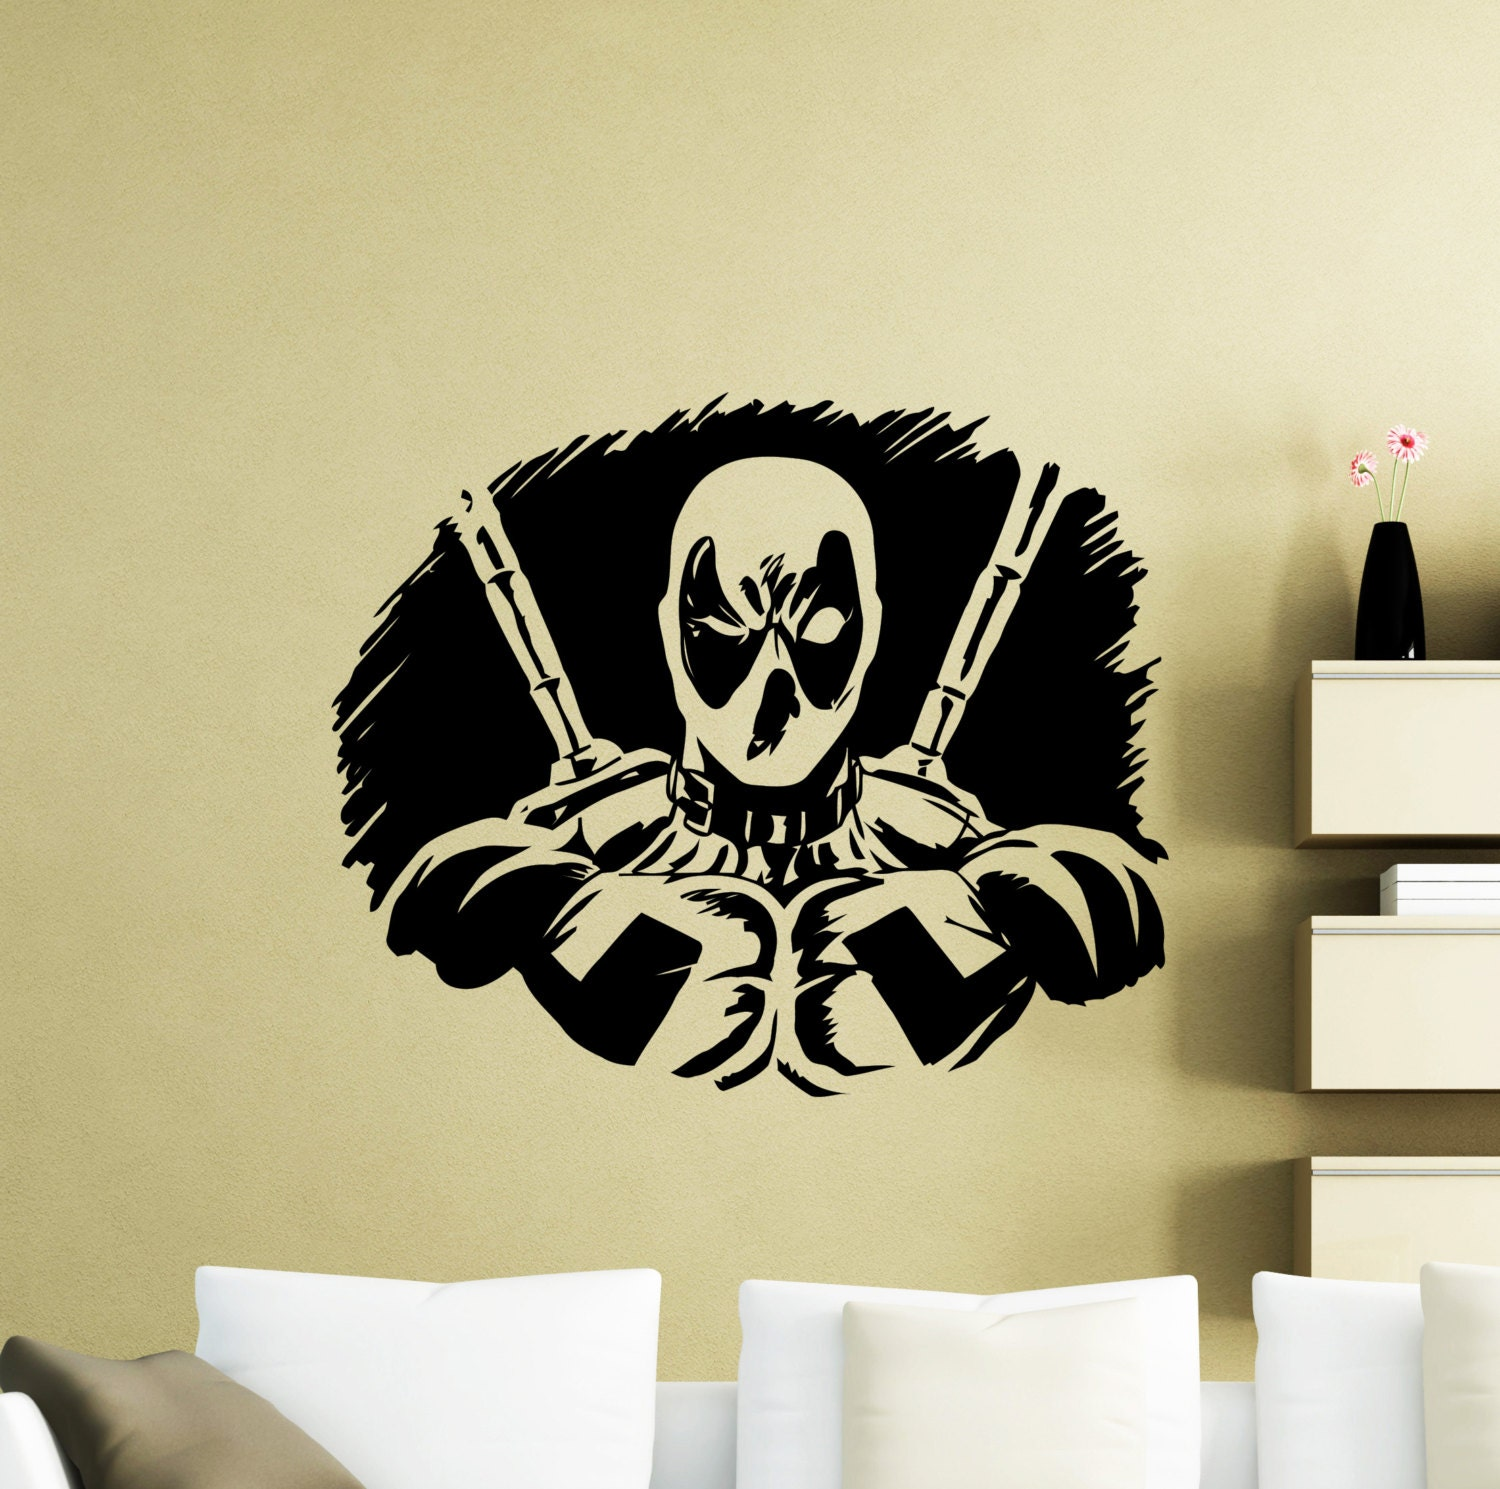 Marvel Superhero Wall Decals - Elitflat